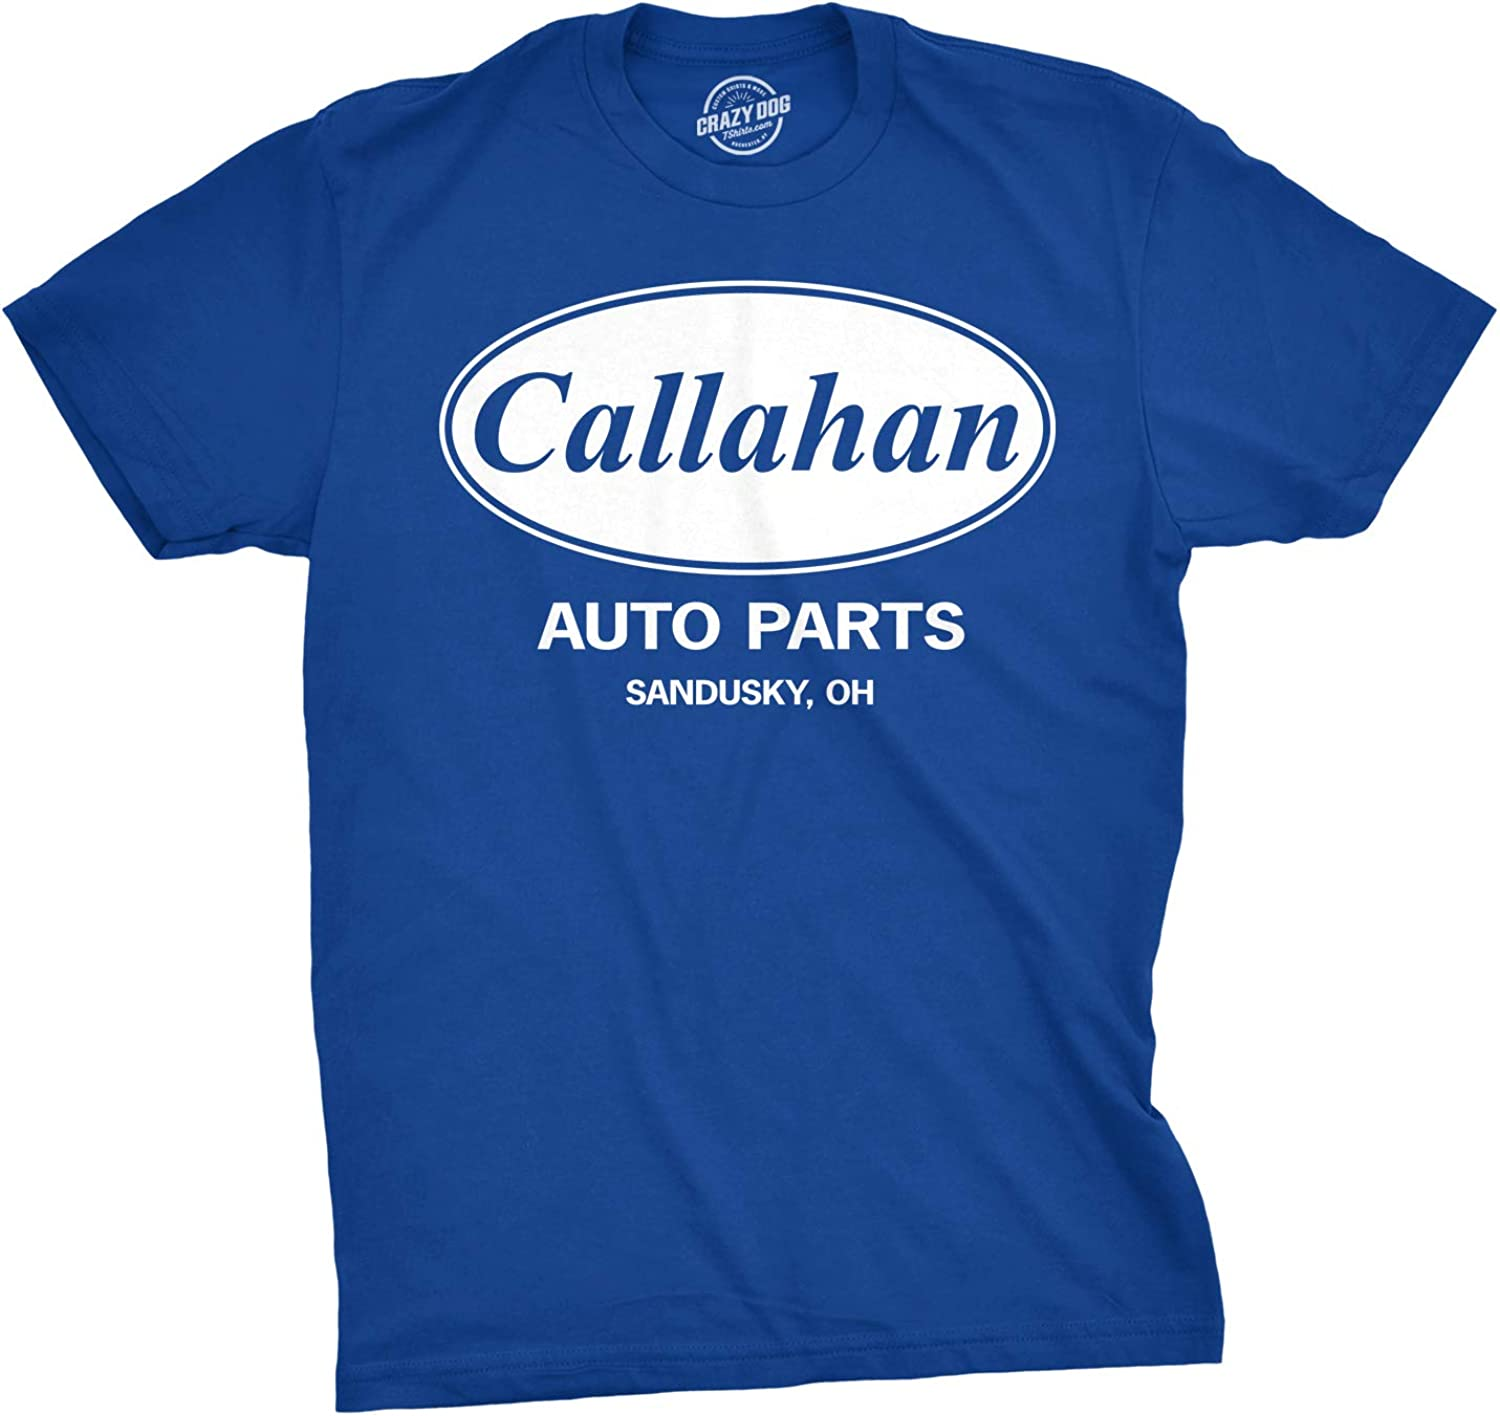 Mens Callahan Auto T Shirt Funny Shirts Cool Humor Graphic Saying Sarcasm Tee